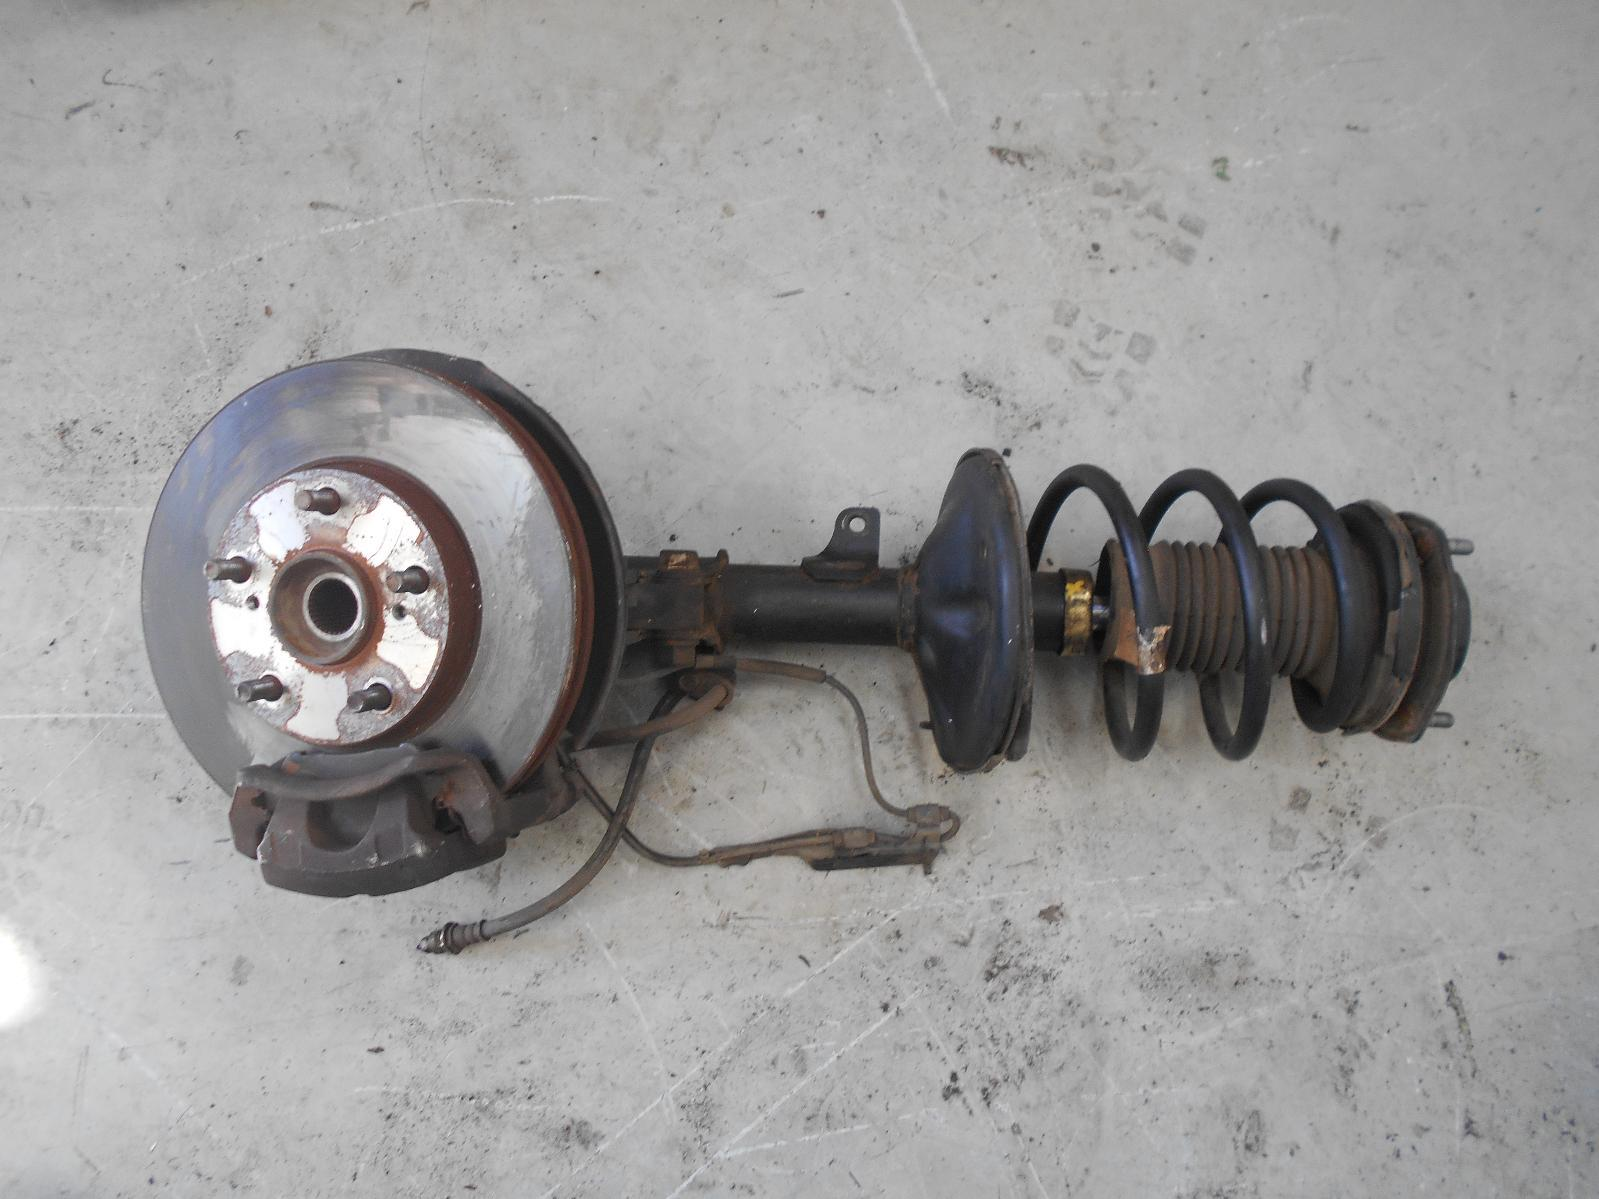 TOYOTA CAMRY, Right Front Strut, SK20, 2.2, 5S-FE, 4CYL, 09/00-08/02